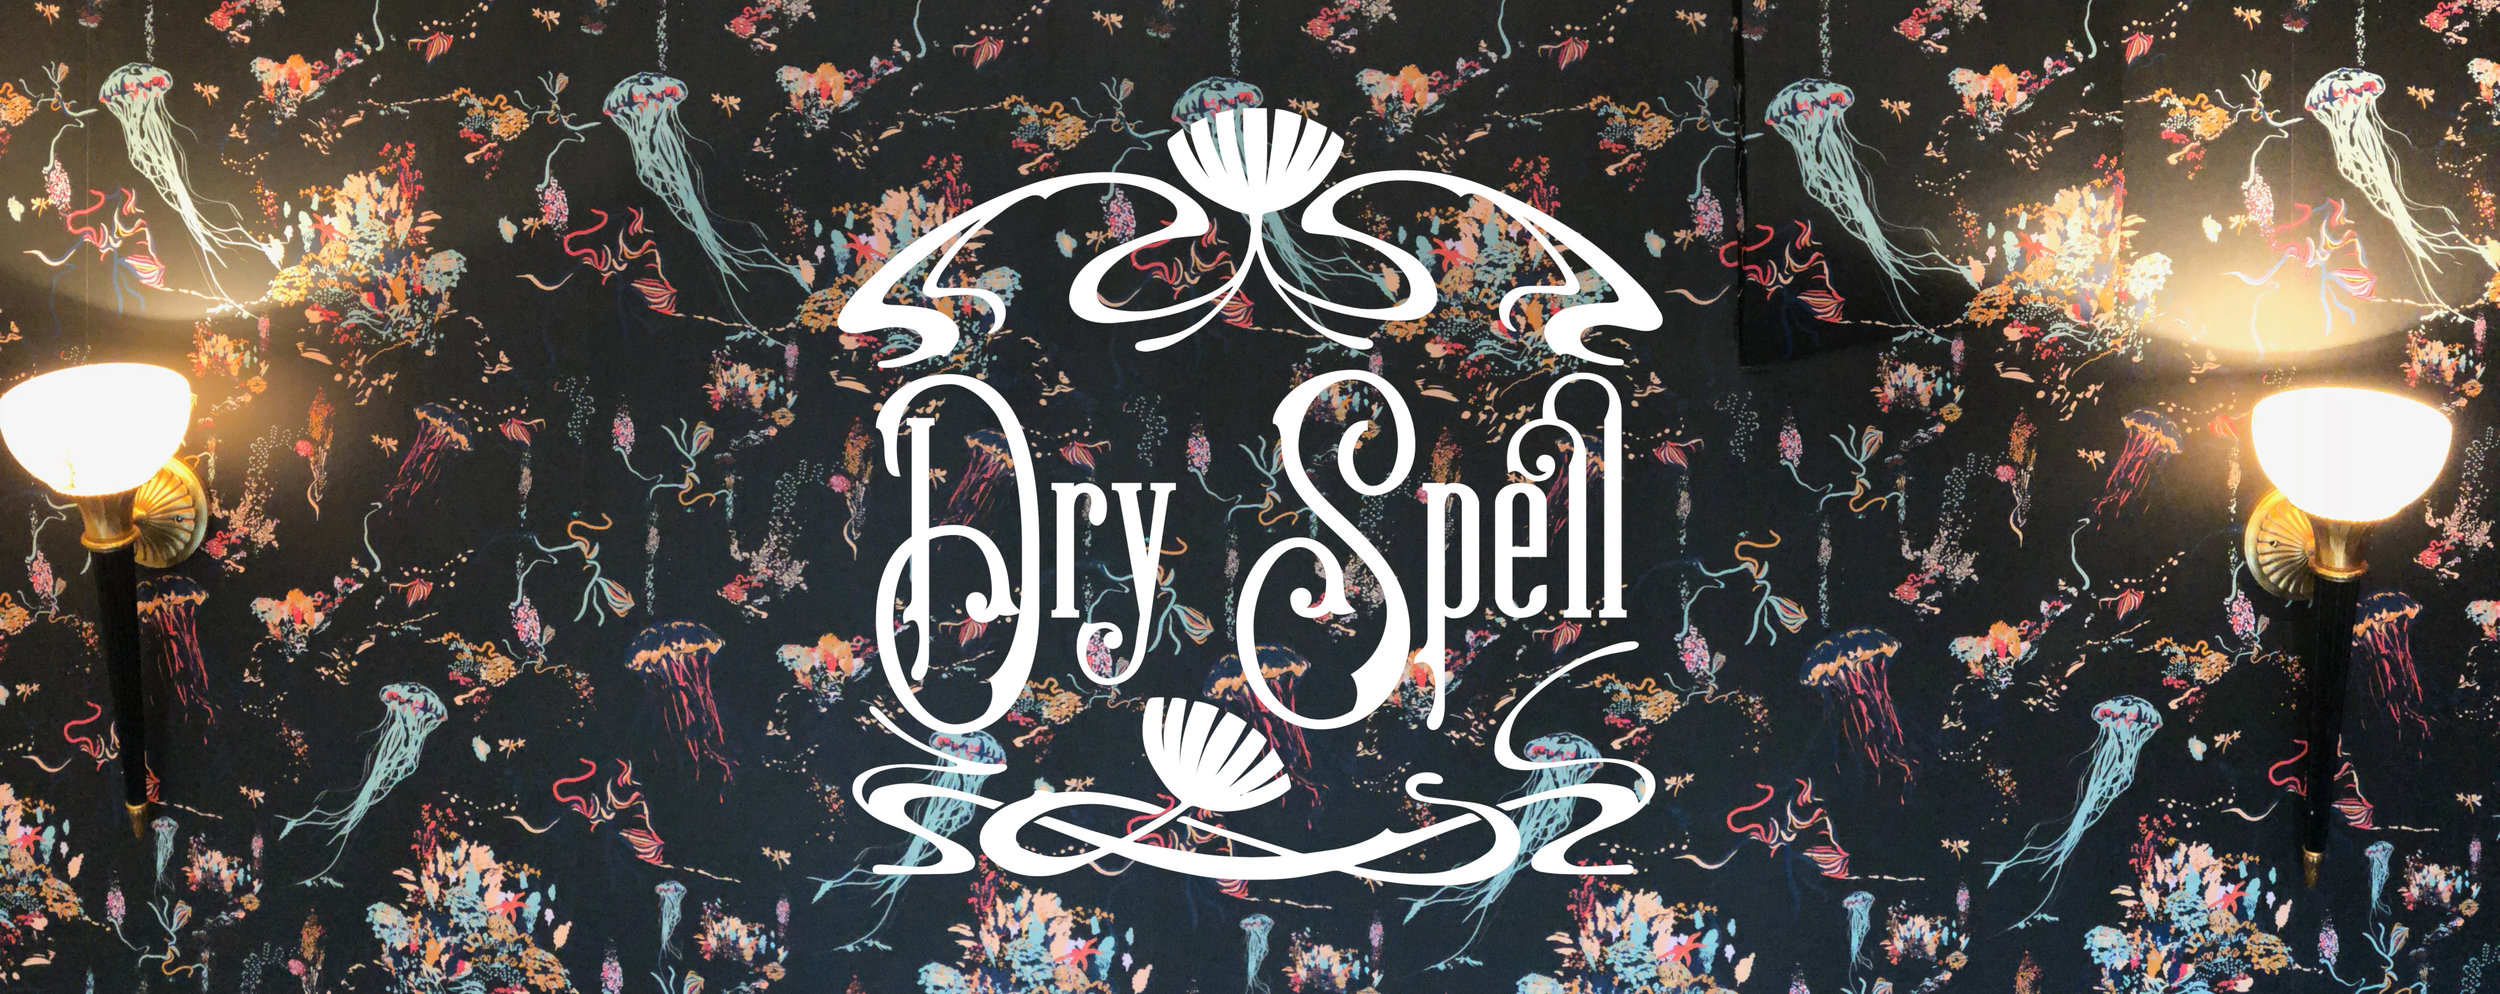 Dry-Spell-wallpaper-pano-with-logo.JPG